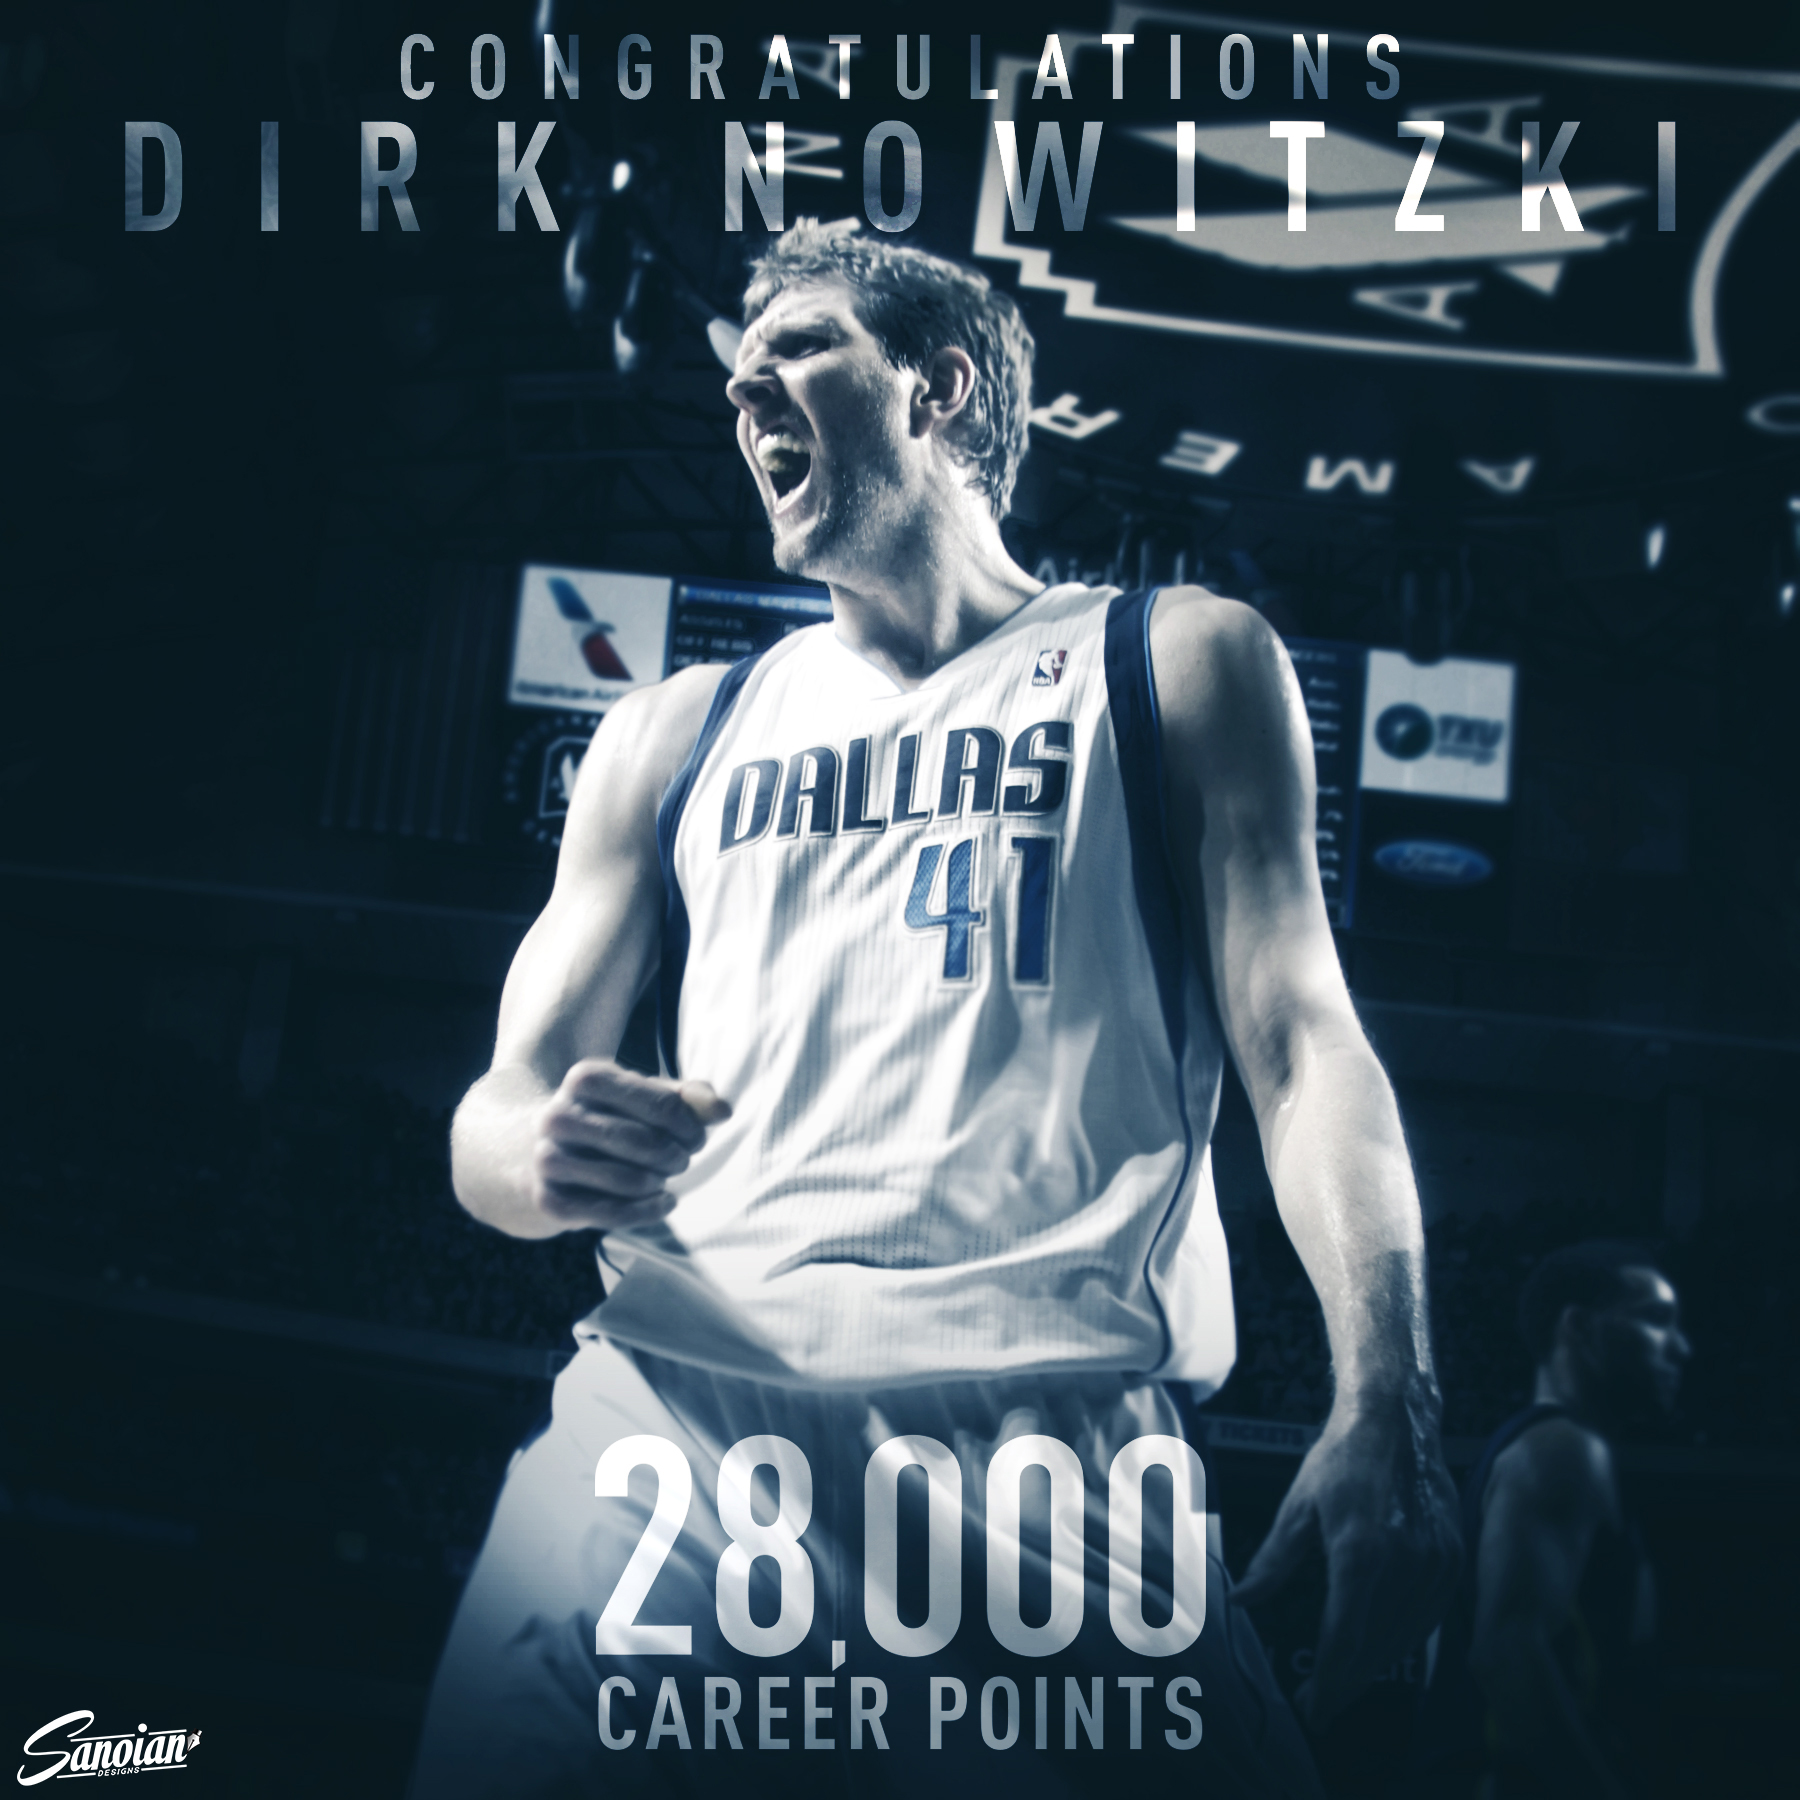 Dirk Nowitzki - 28,000 Career Points